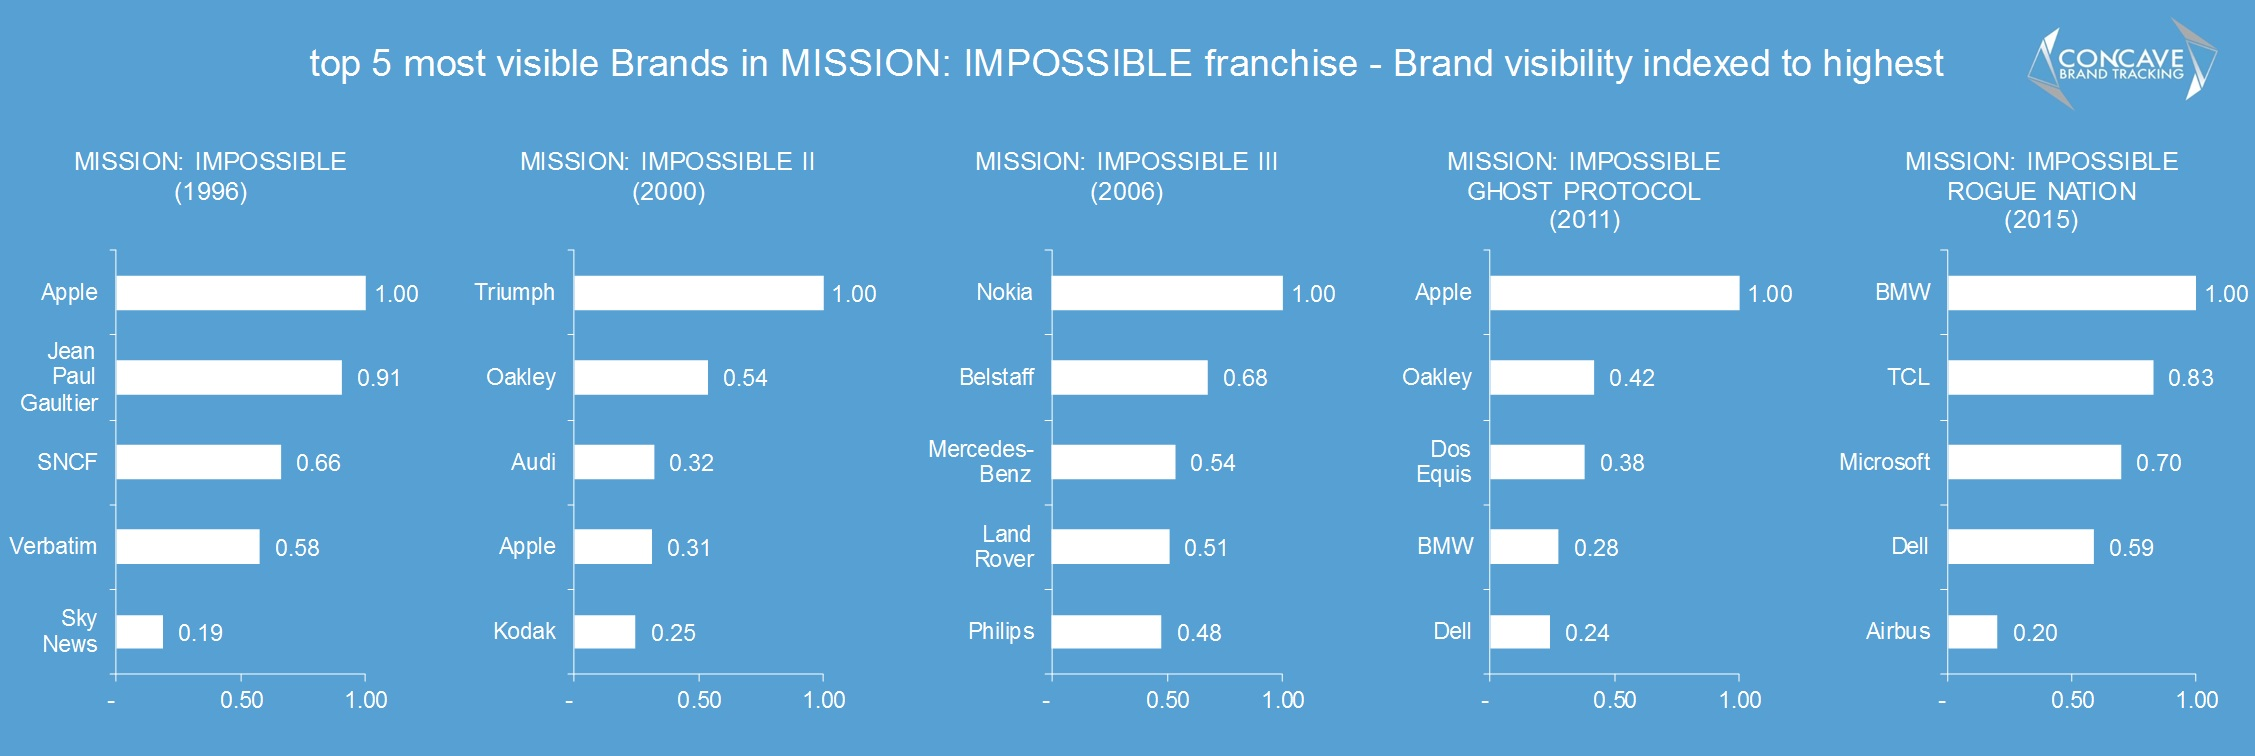 top in 5 brands in mission impossible movies